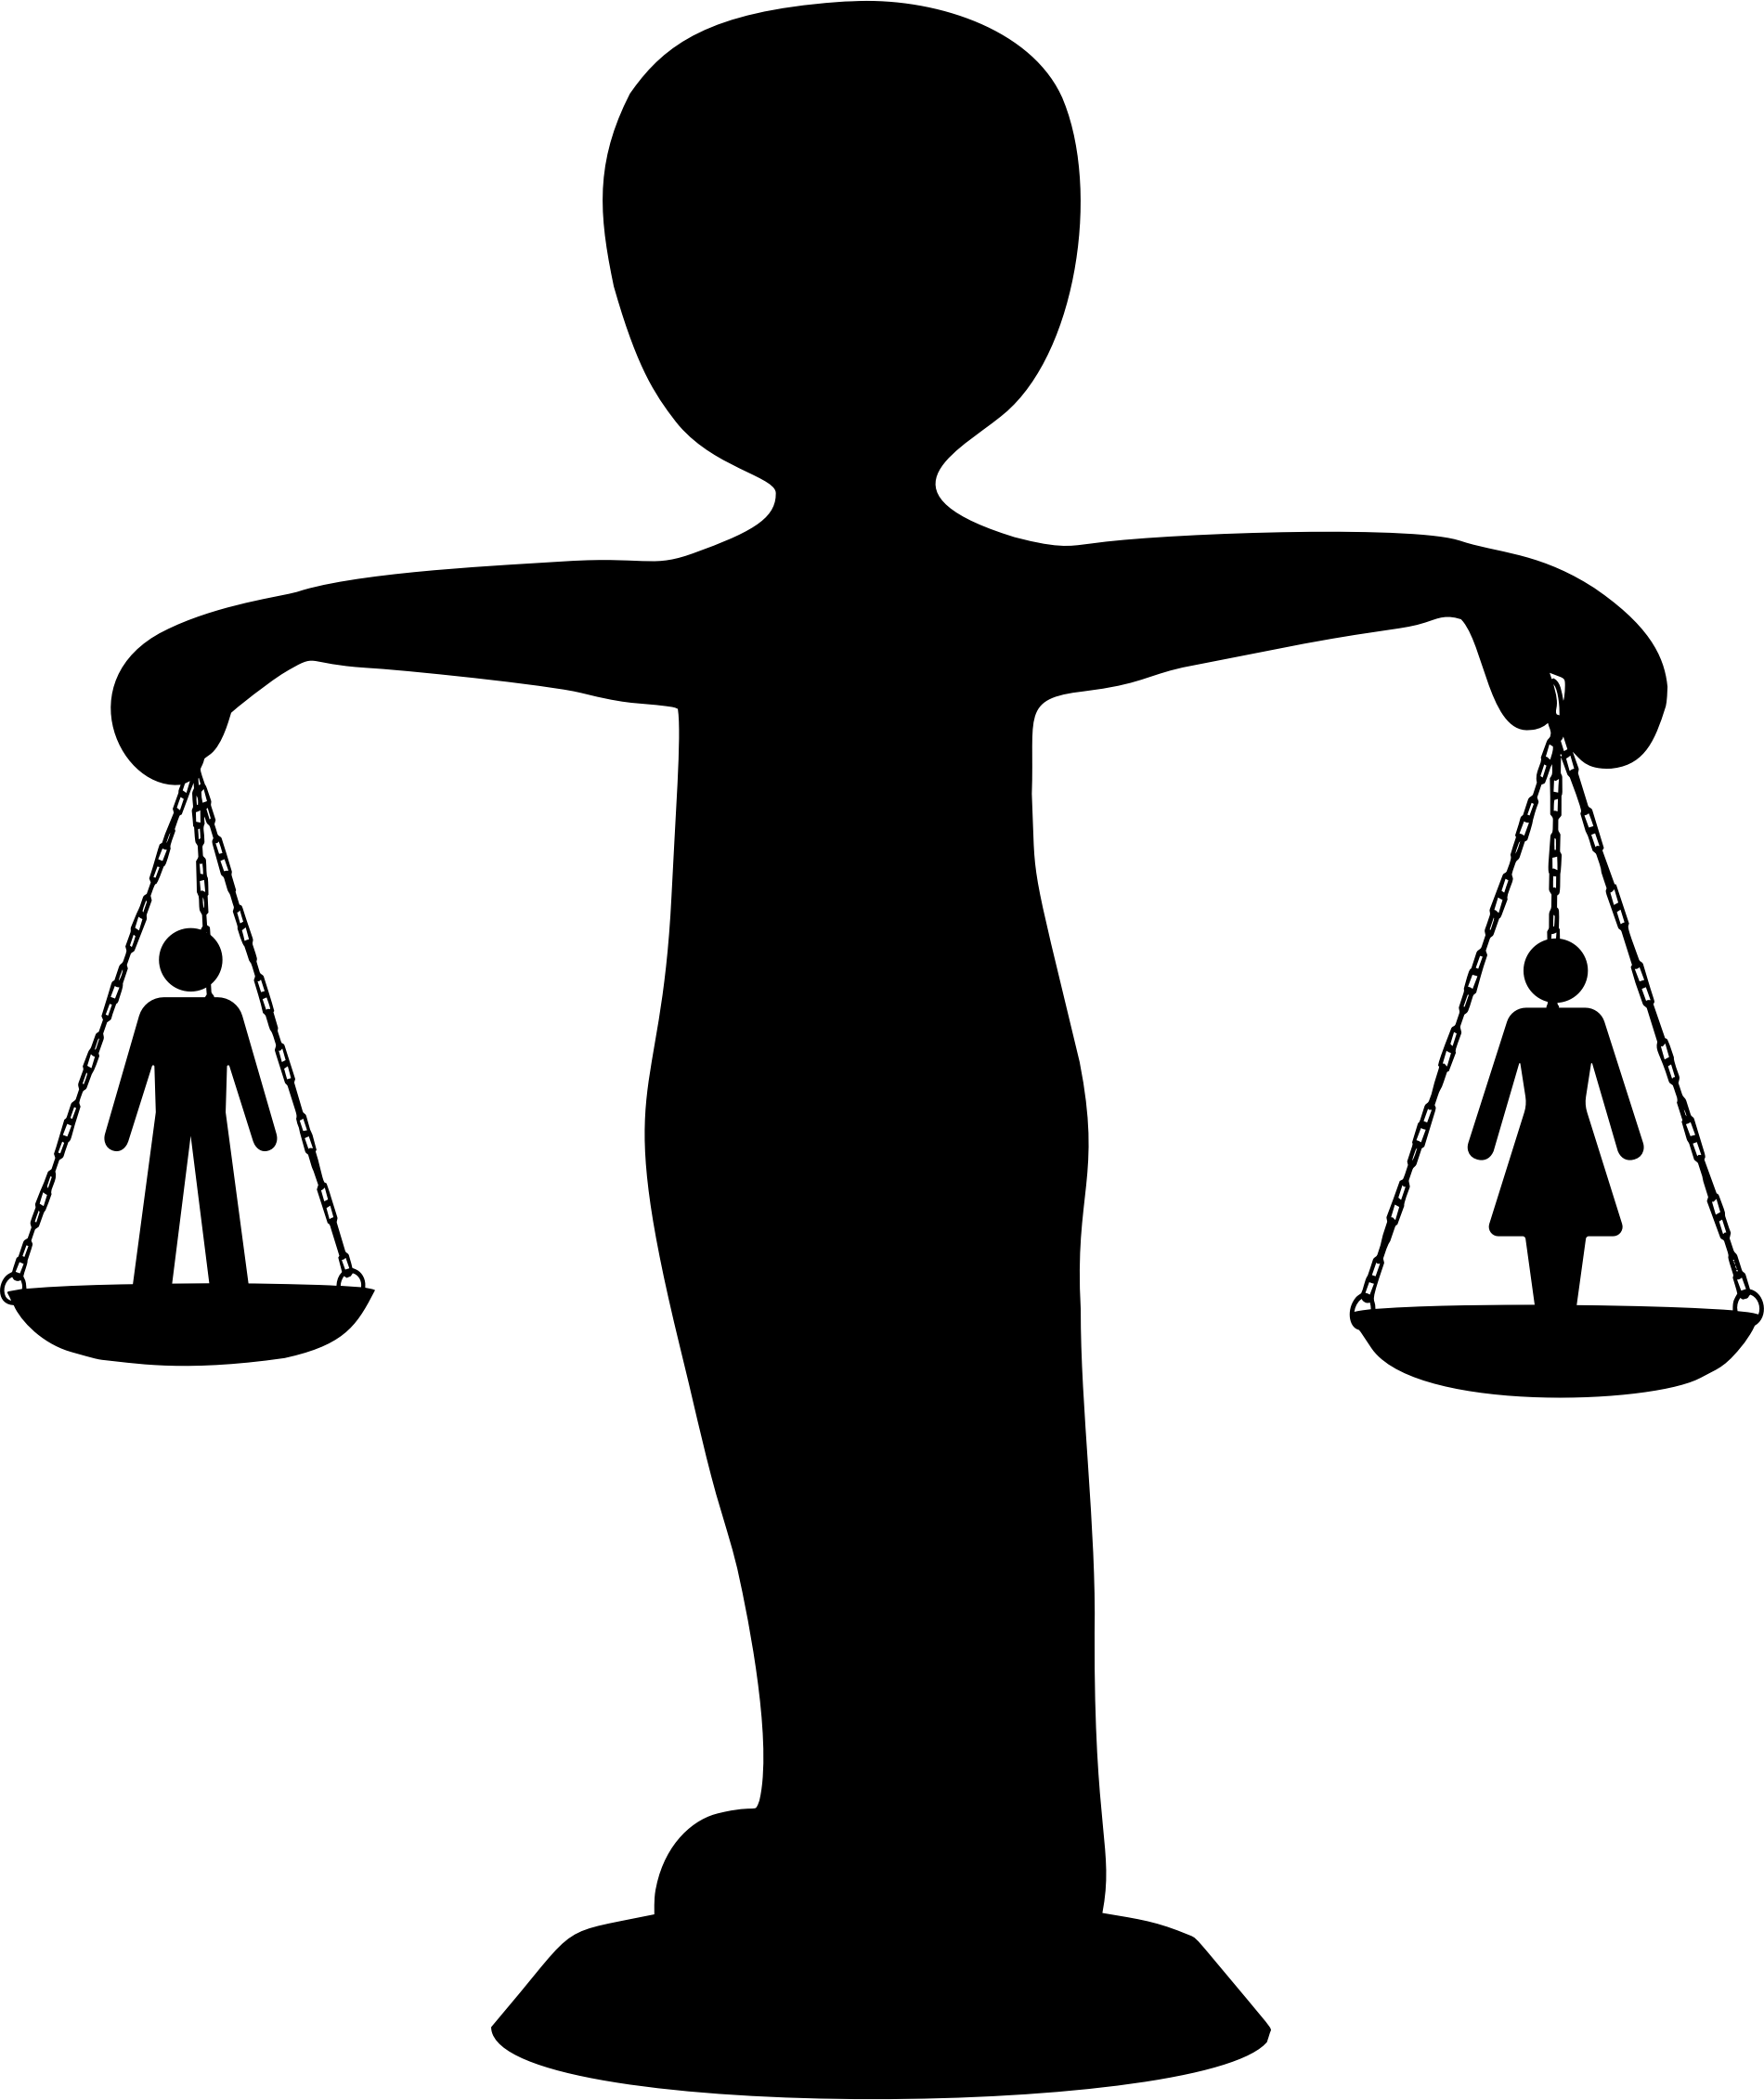 Transparent scales equality. The role of law